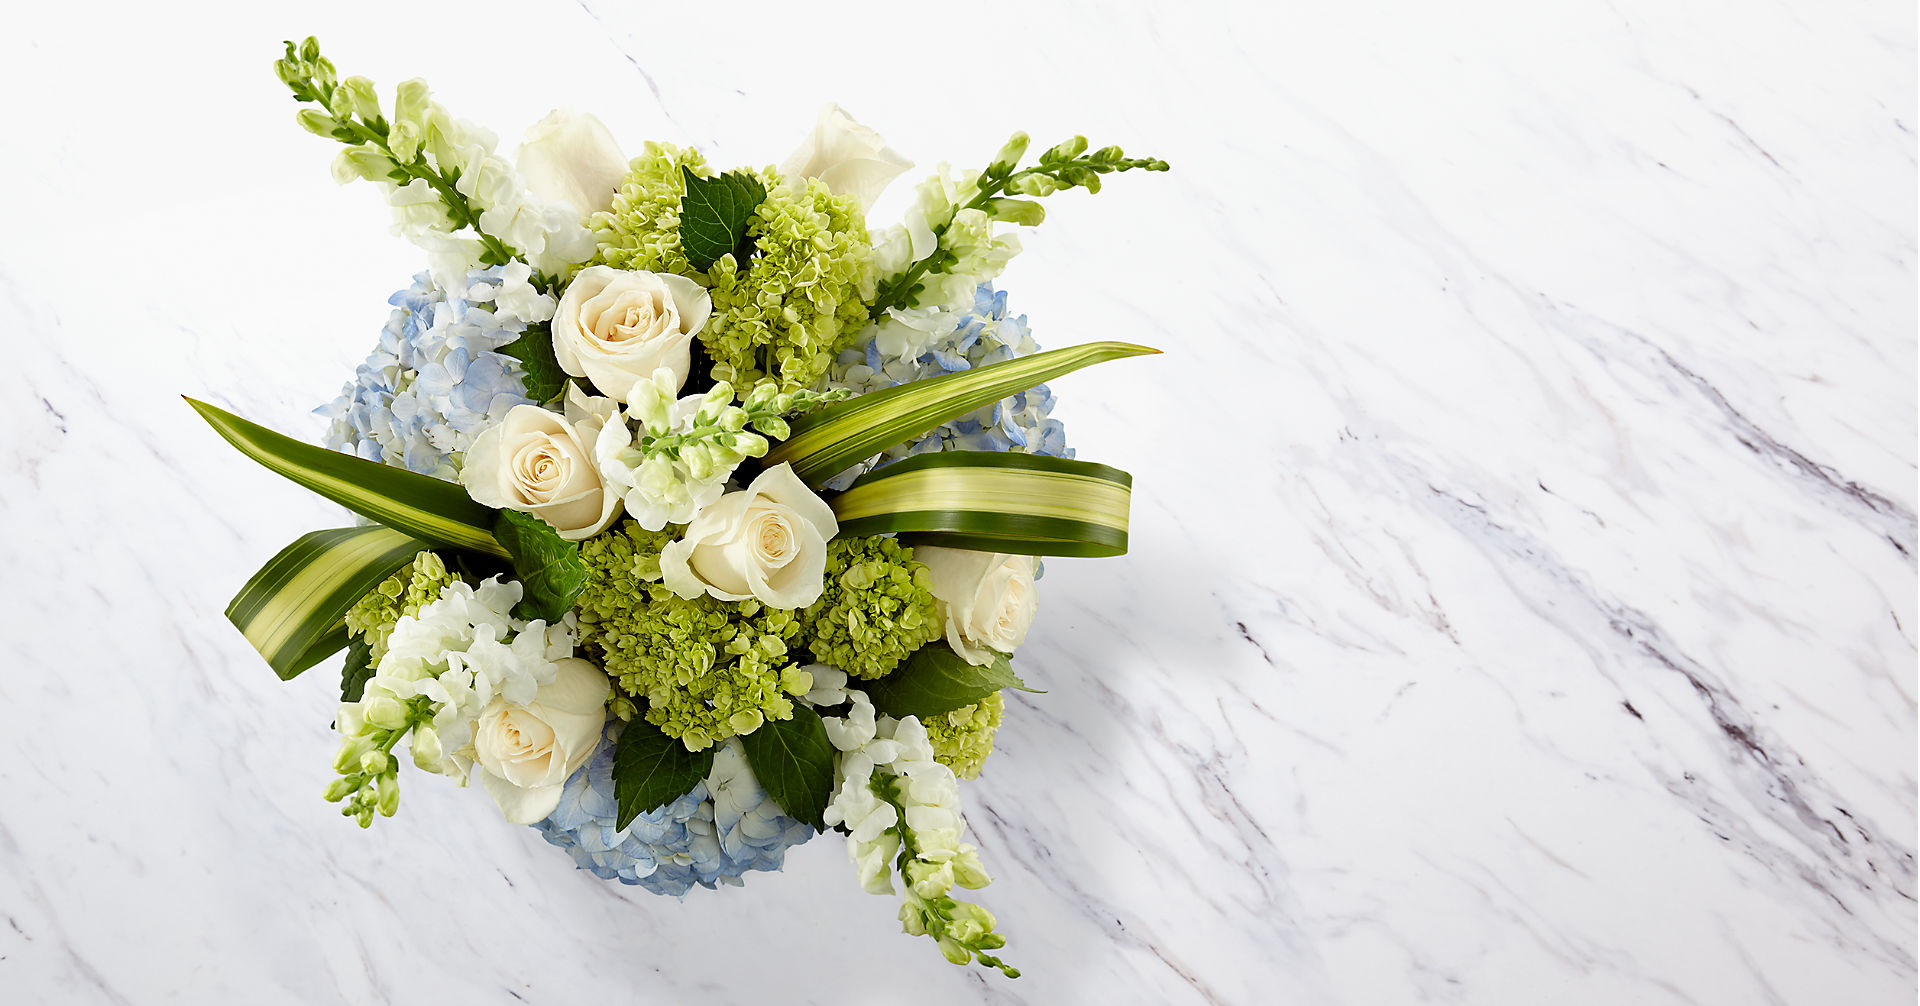 Superior Sights™ Luxury Bouquet - Blue & White - Image 2 Of 5